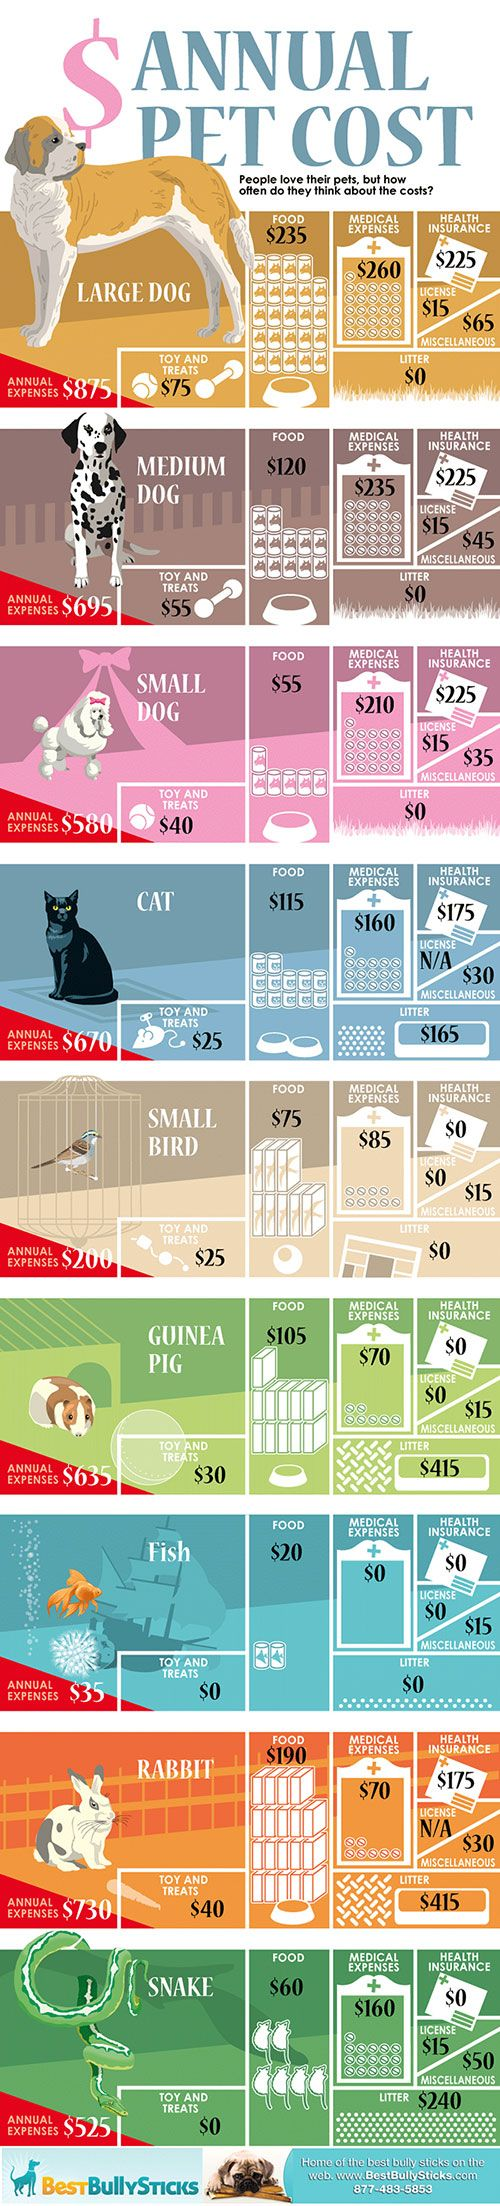 Annual Pet Cost- estimation. Not everyone buys tons of toys and treats and different food brands are different prices